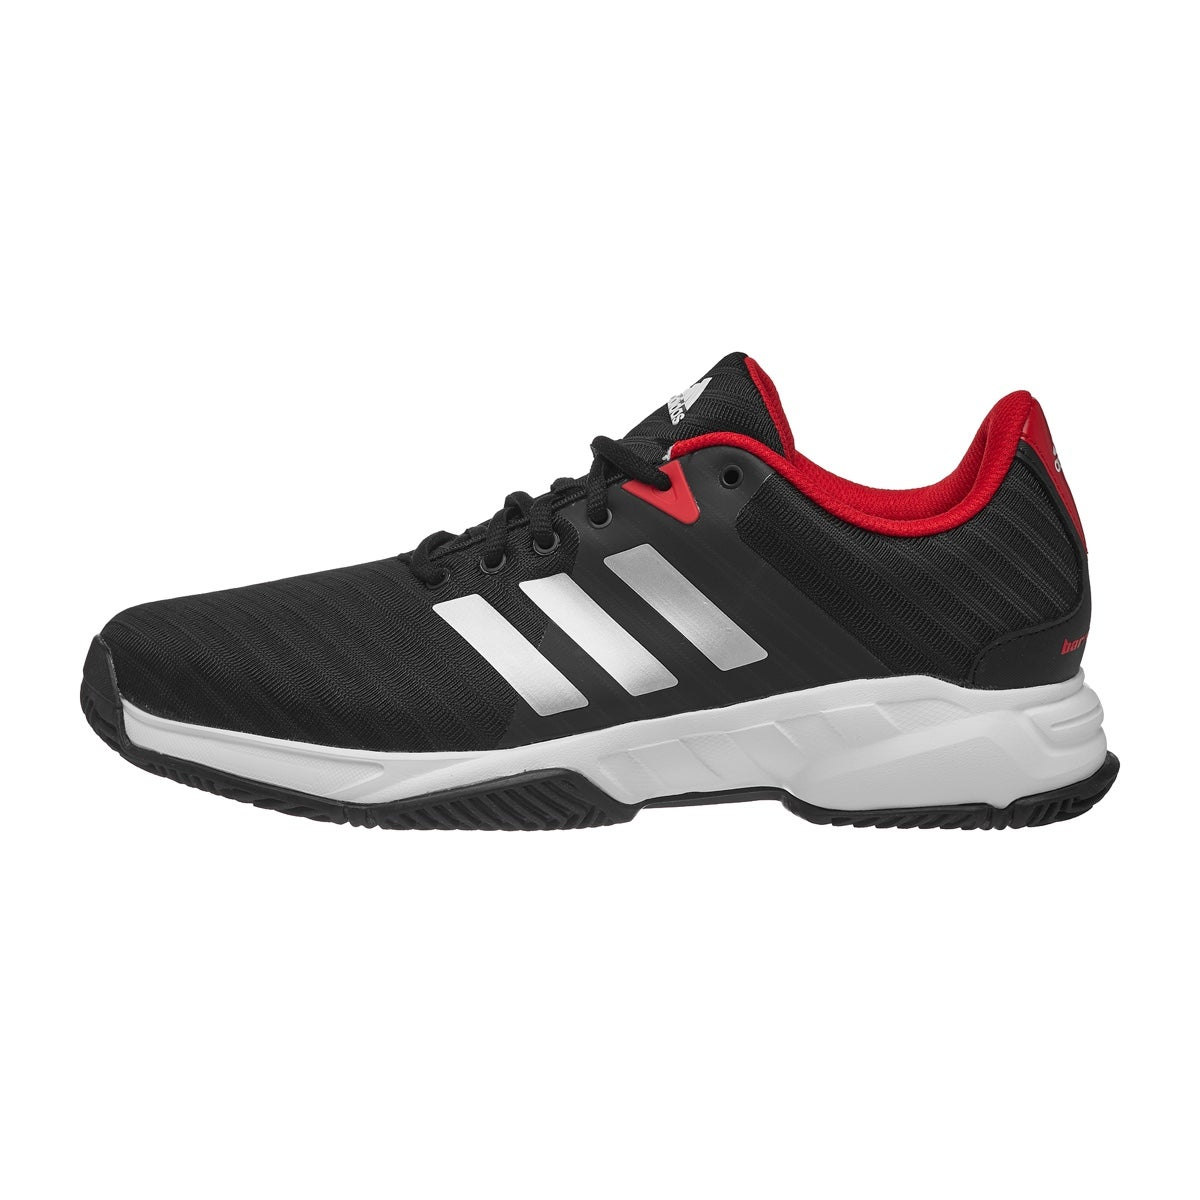 Adidas White Black Red S Shoes Tennis